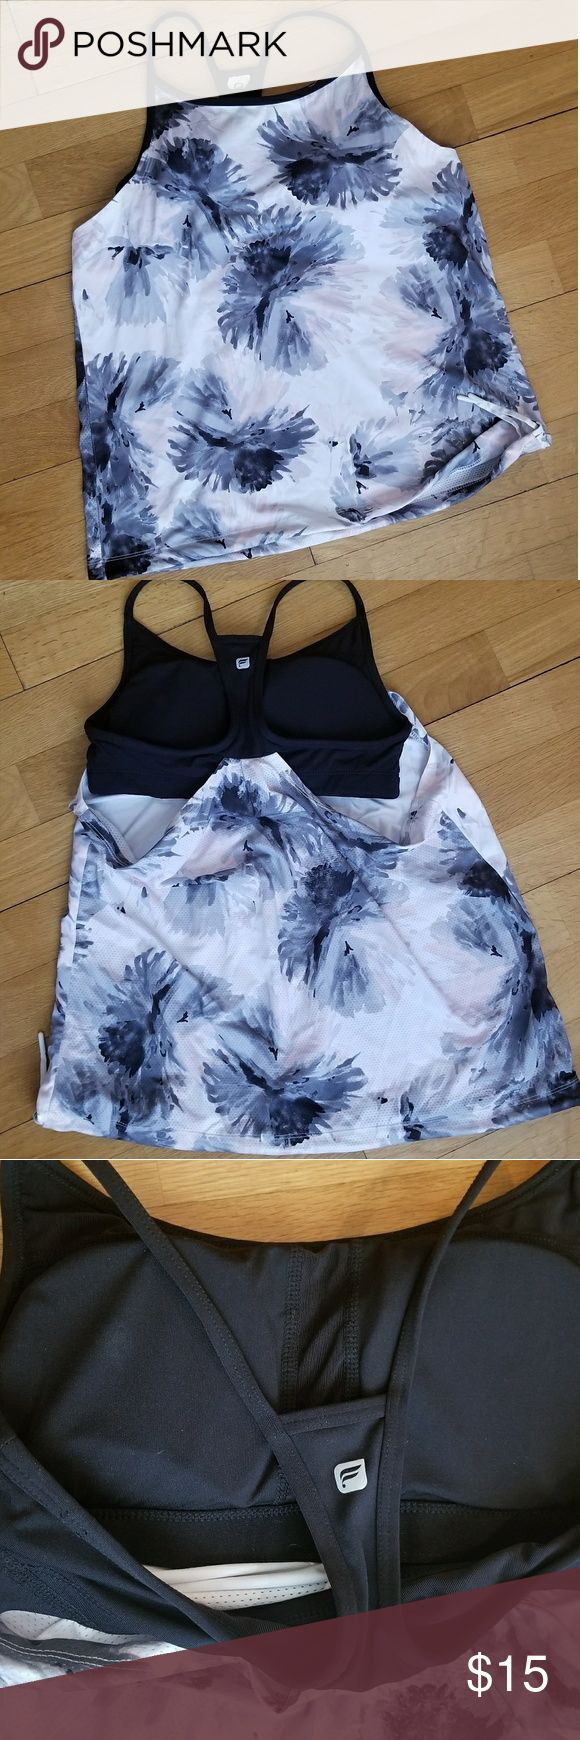 Fabletics tank Flowy tank, able to be cinched and tied at the bottom. Pink/grey/white light flowered fabric with built in padded black bra. Open back around the bra, perfect for hot summers! Fabletics Tops Tank Tops